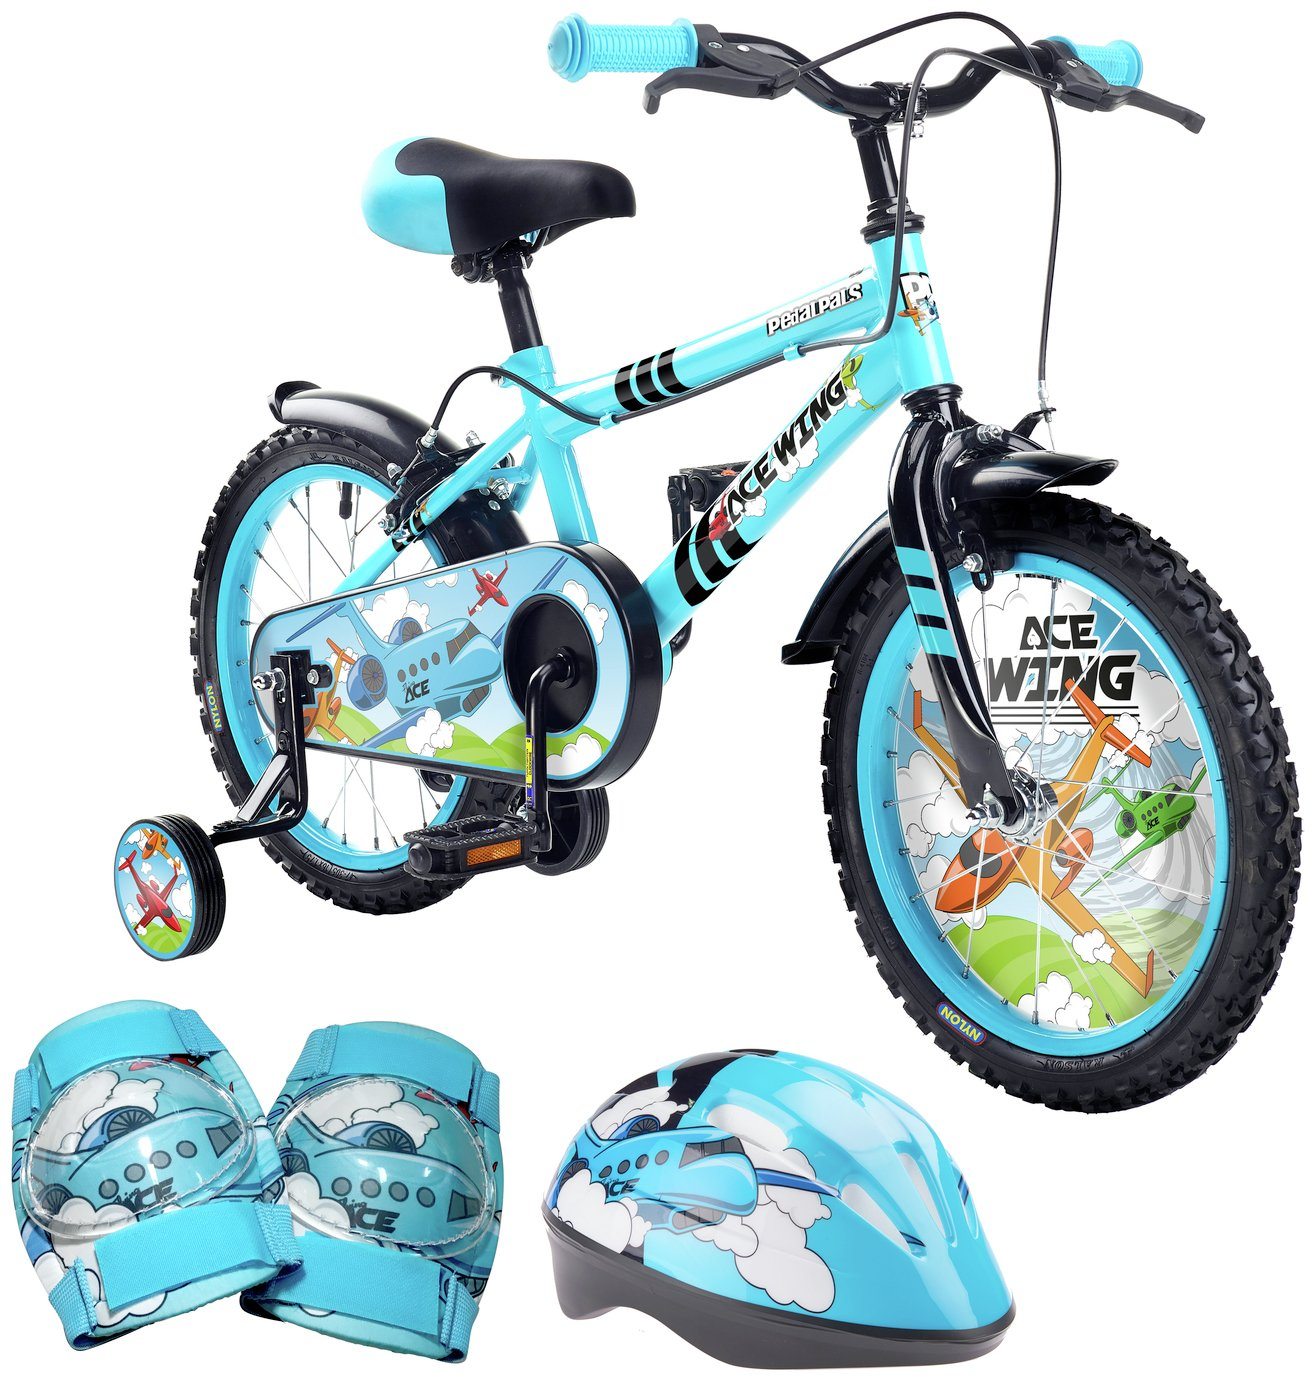 Pedal Pals 16 Inch Ace Wing Kids Bike and Accessories Set